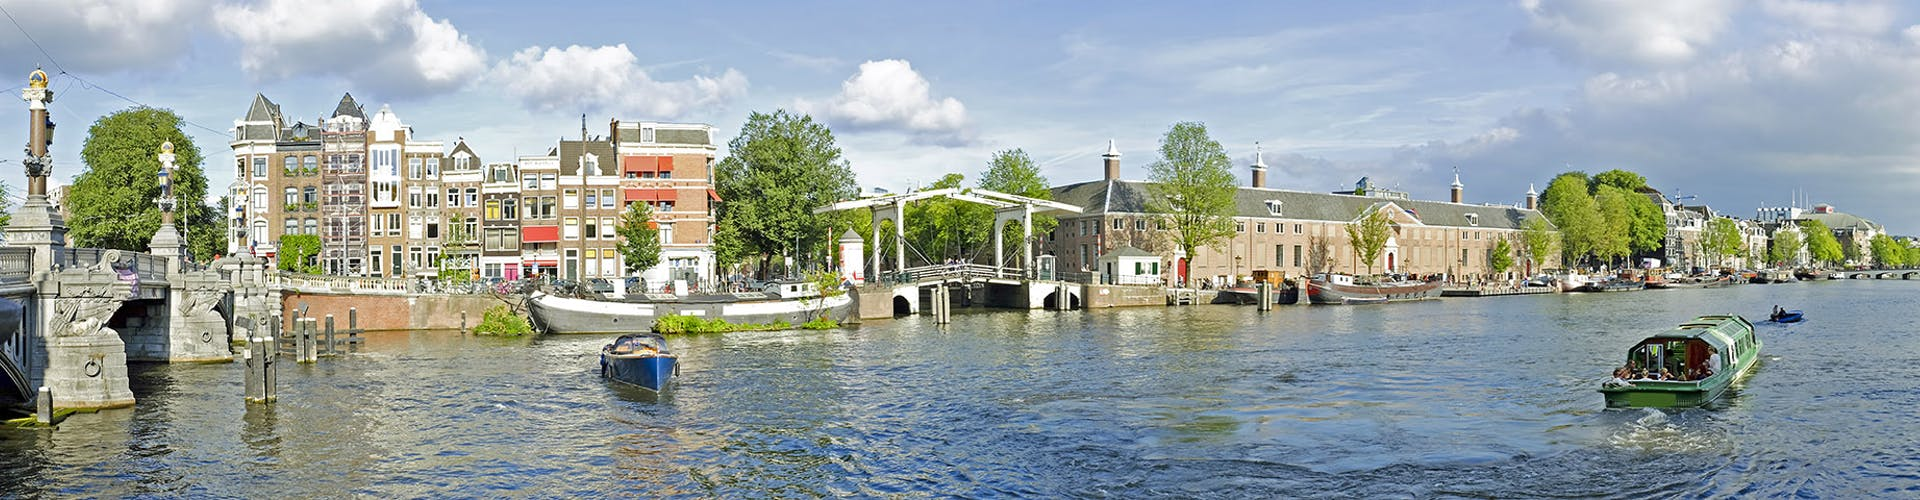 Study Area & Cultural Studies in Netherlands